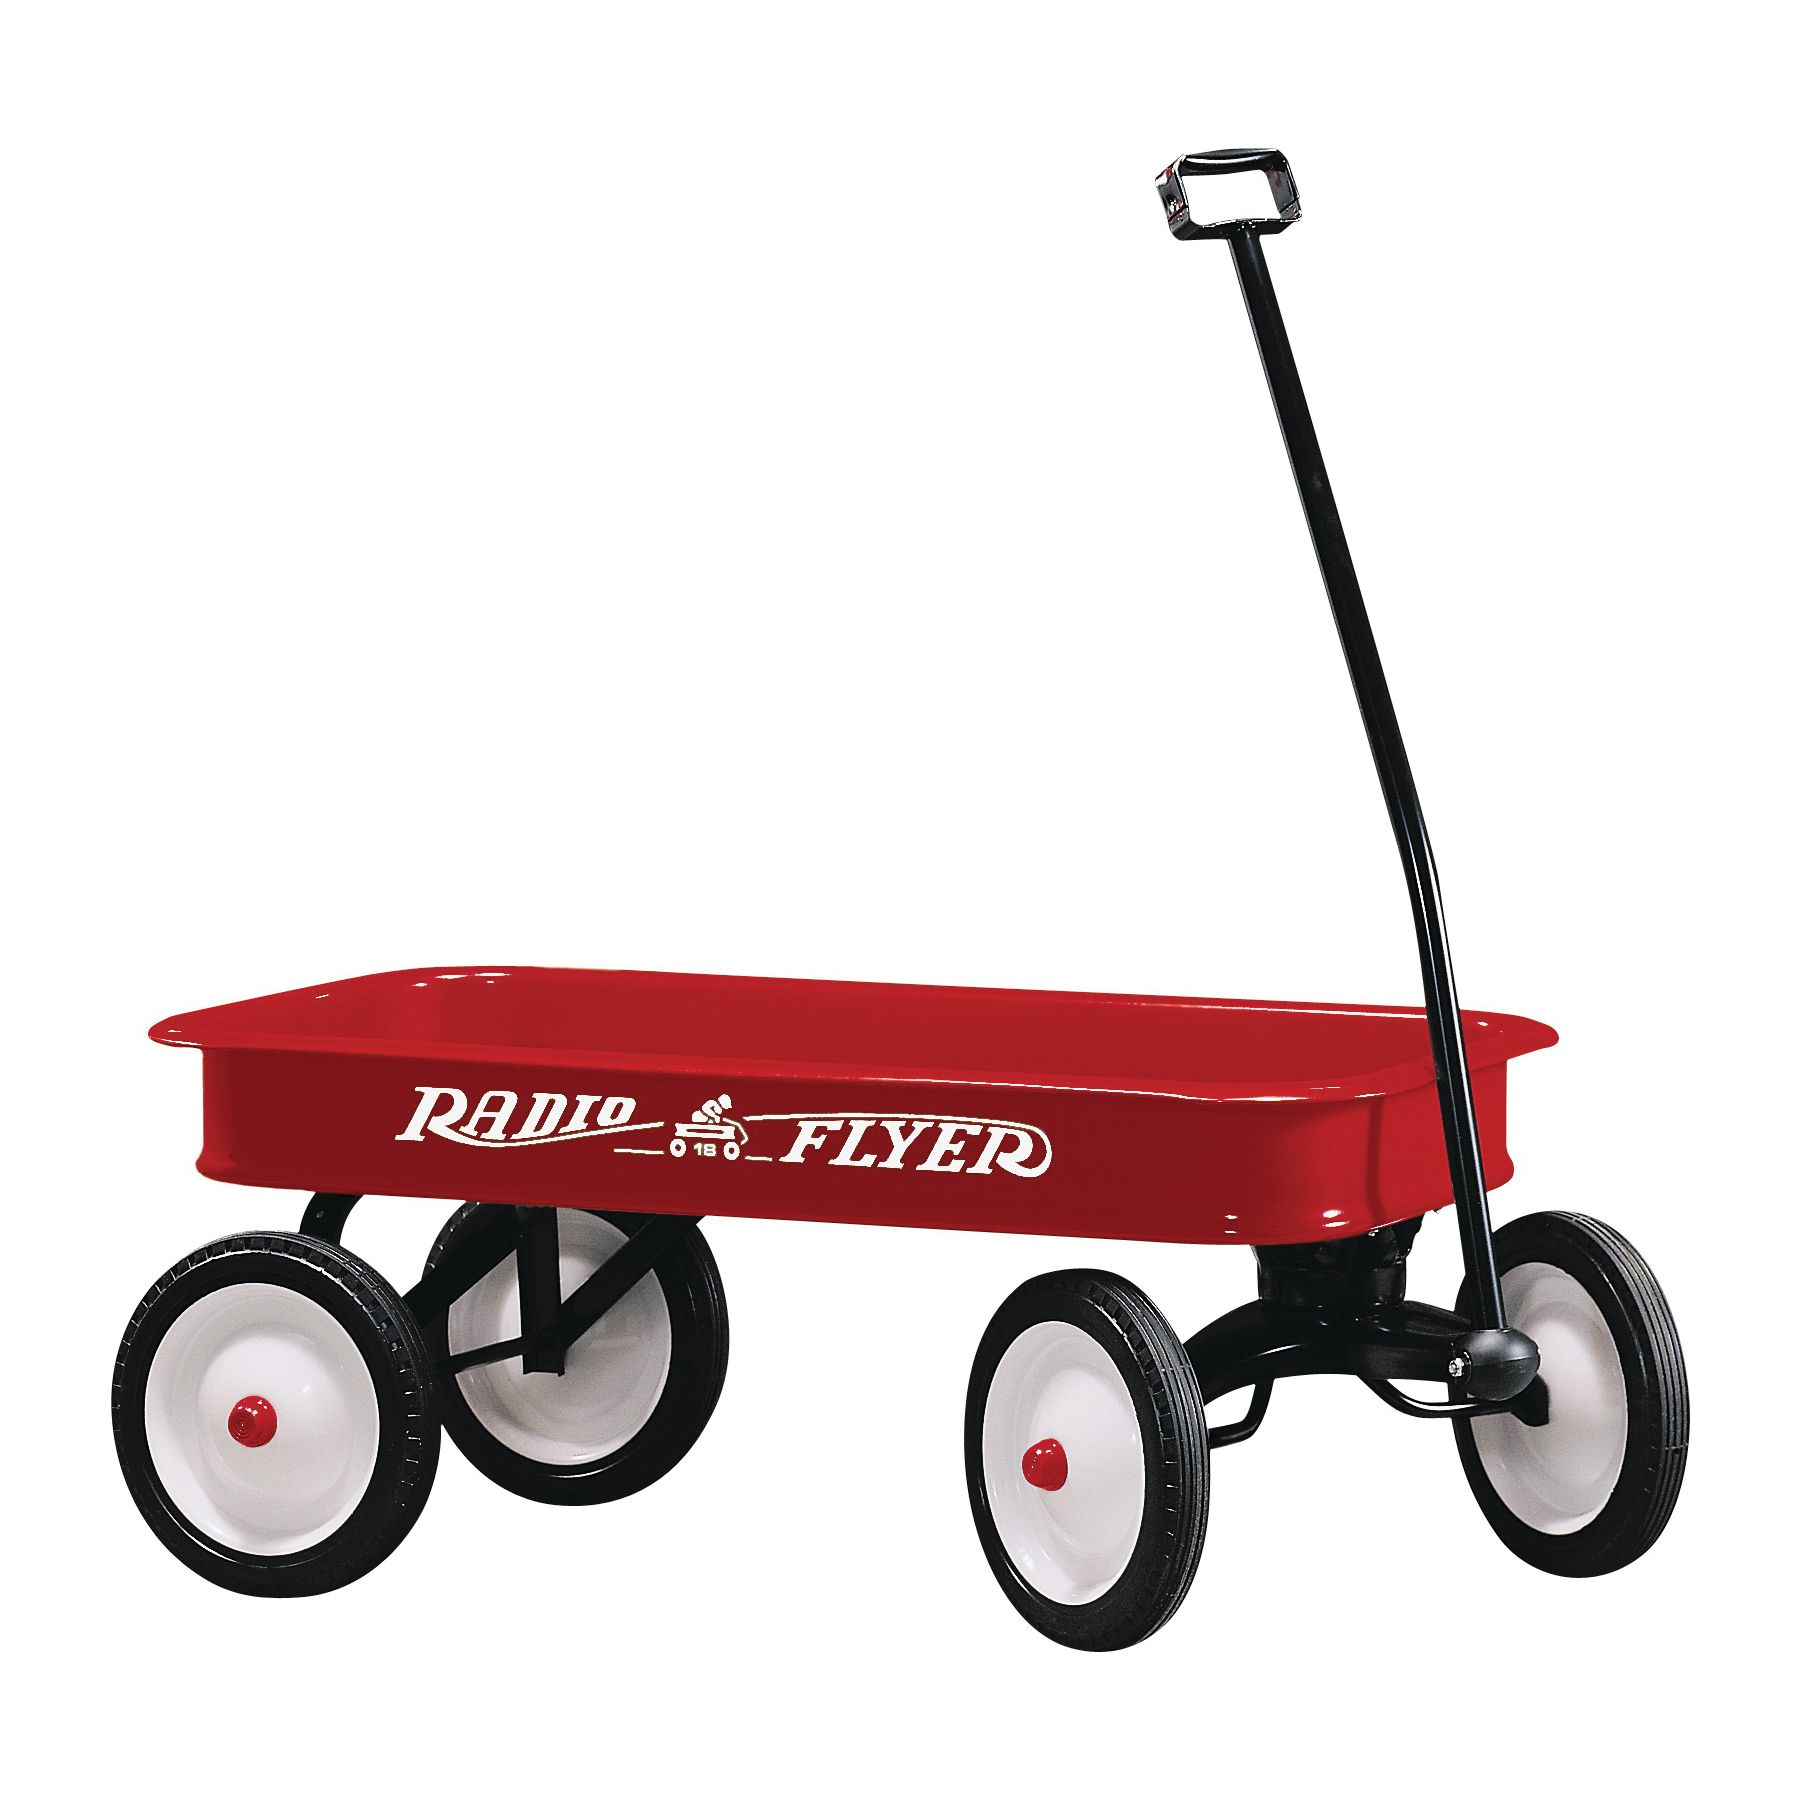 Picture of RADIO FLYER 18 Wagon, 150 lb Capacity, Steel, Classic Red